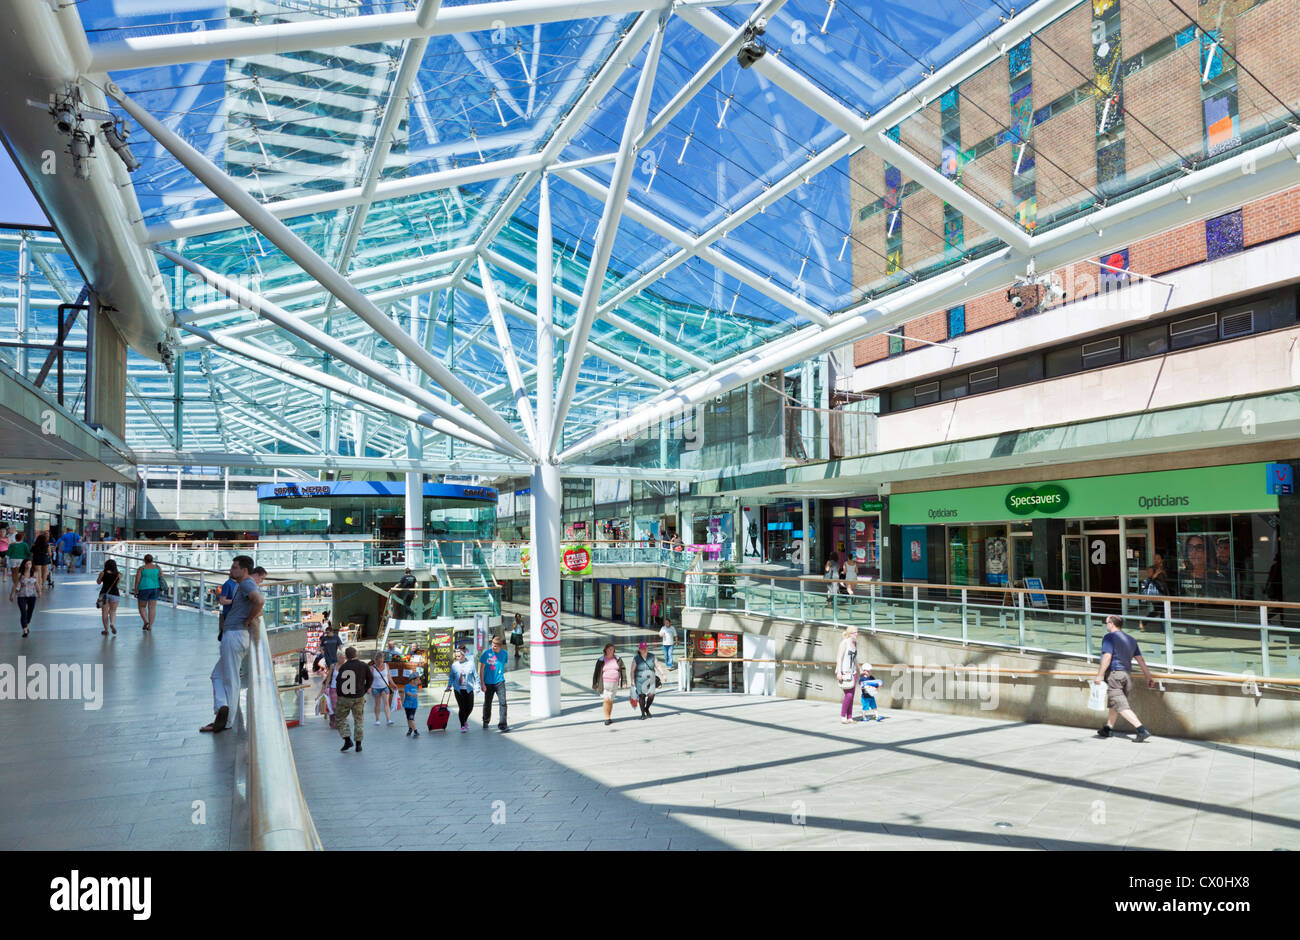 Inside Lower Precinct Shopping Centre Coventry Warwickshire England UK GB EU Europe - Stock Image